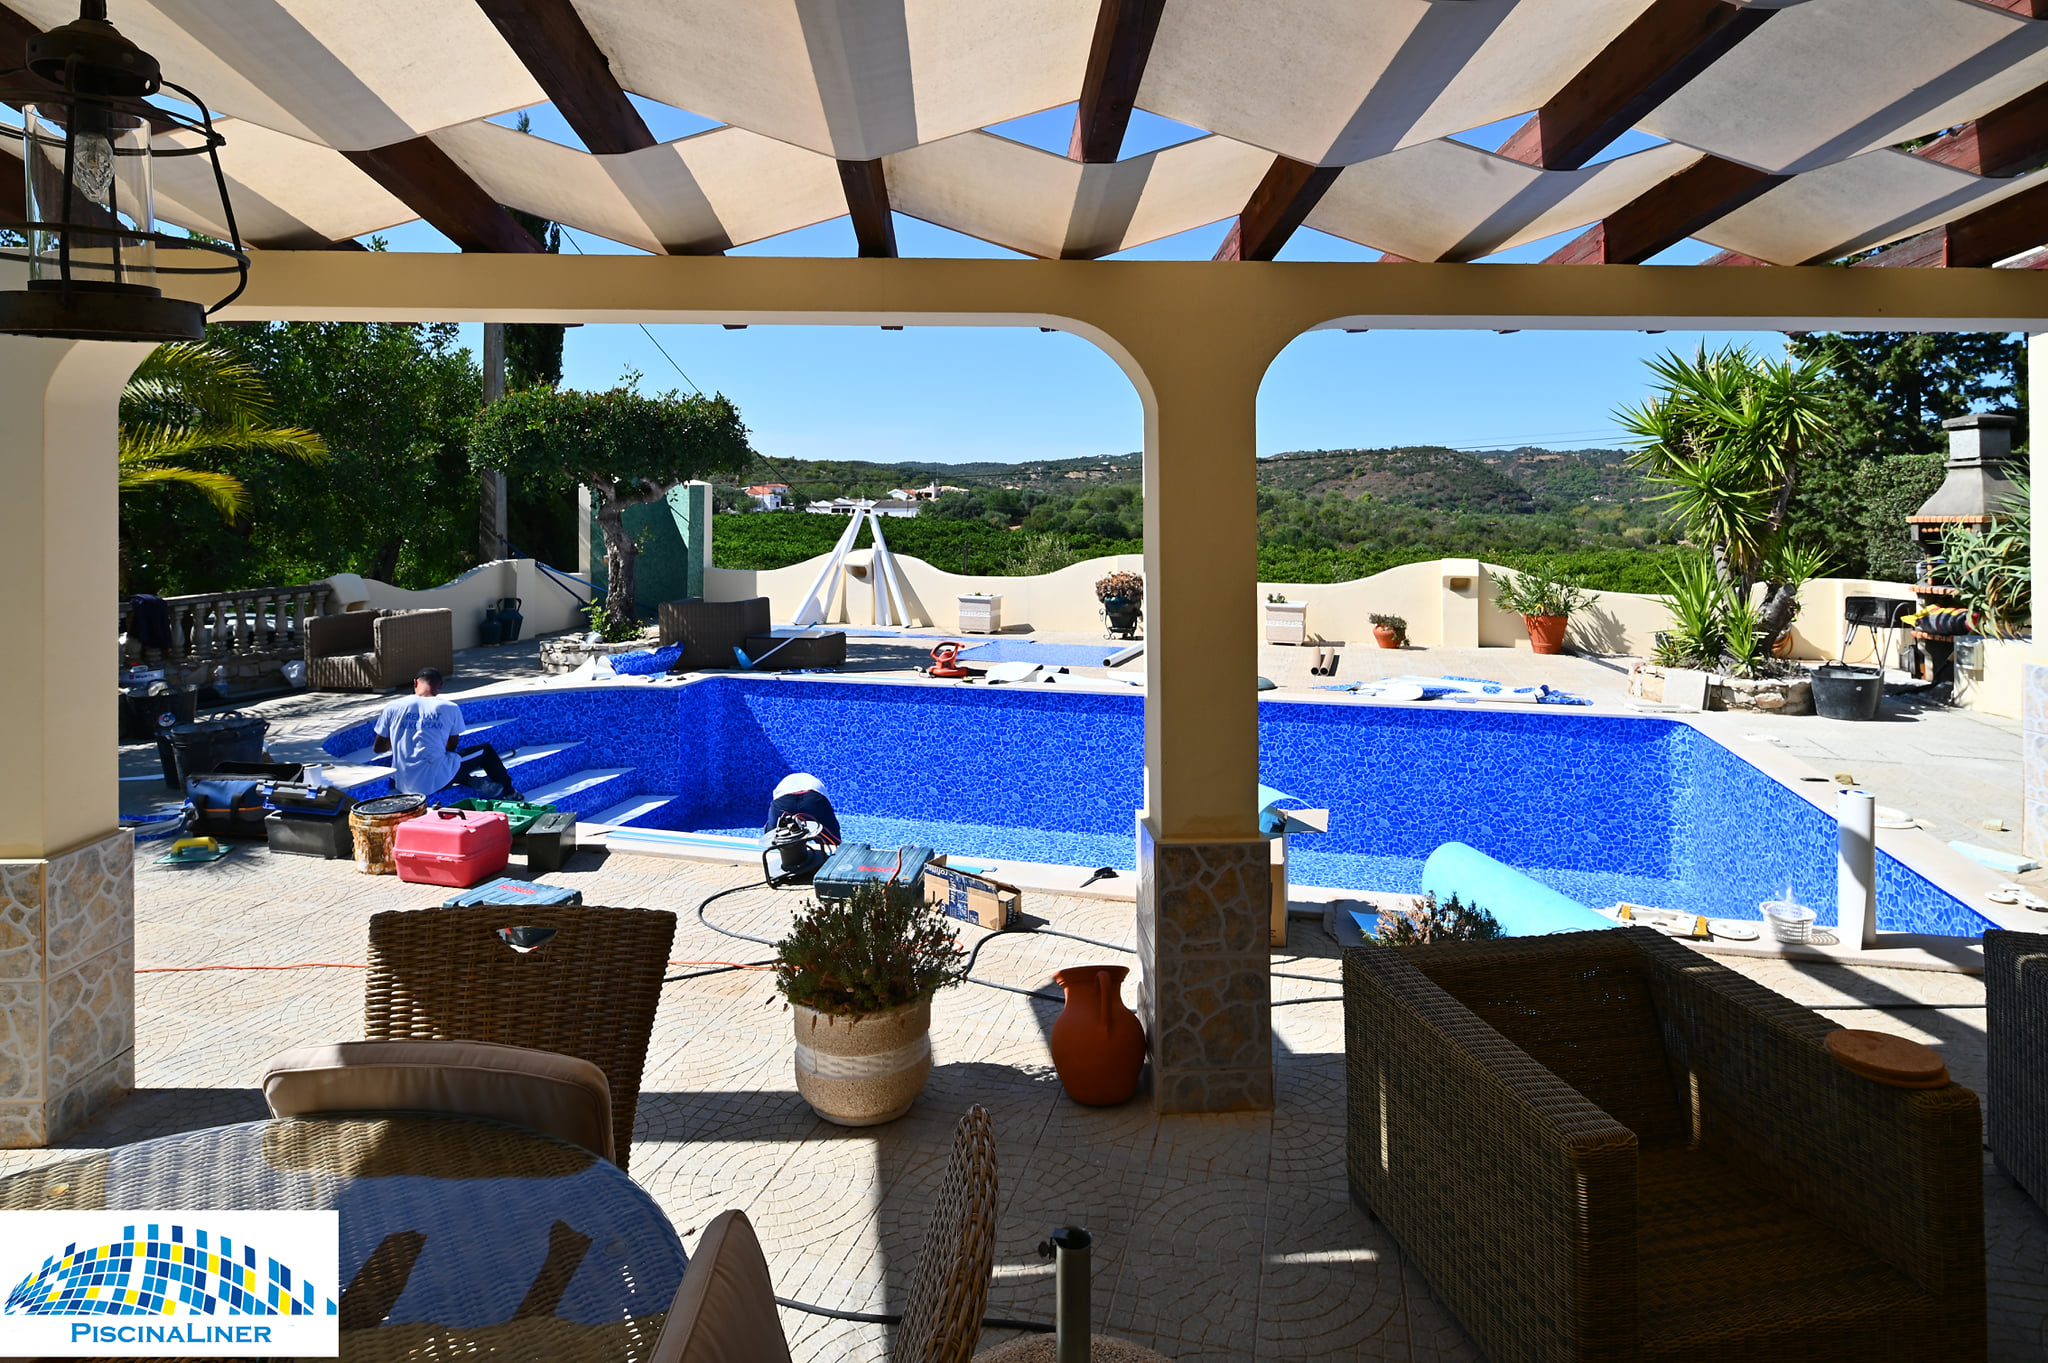 Renovating a liner swimming pool